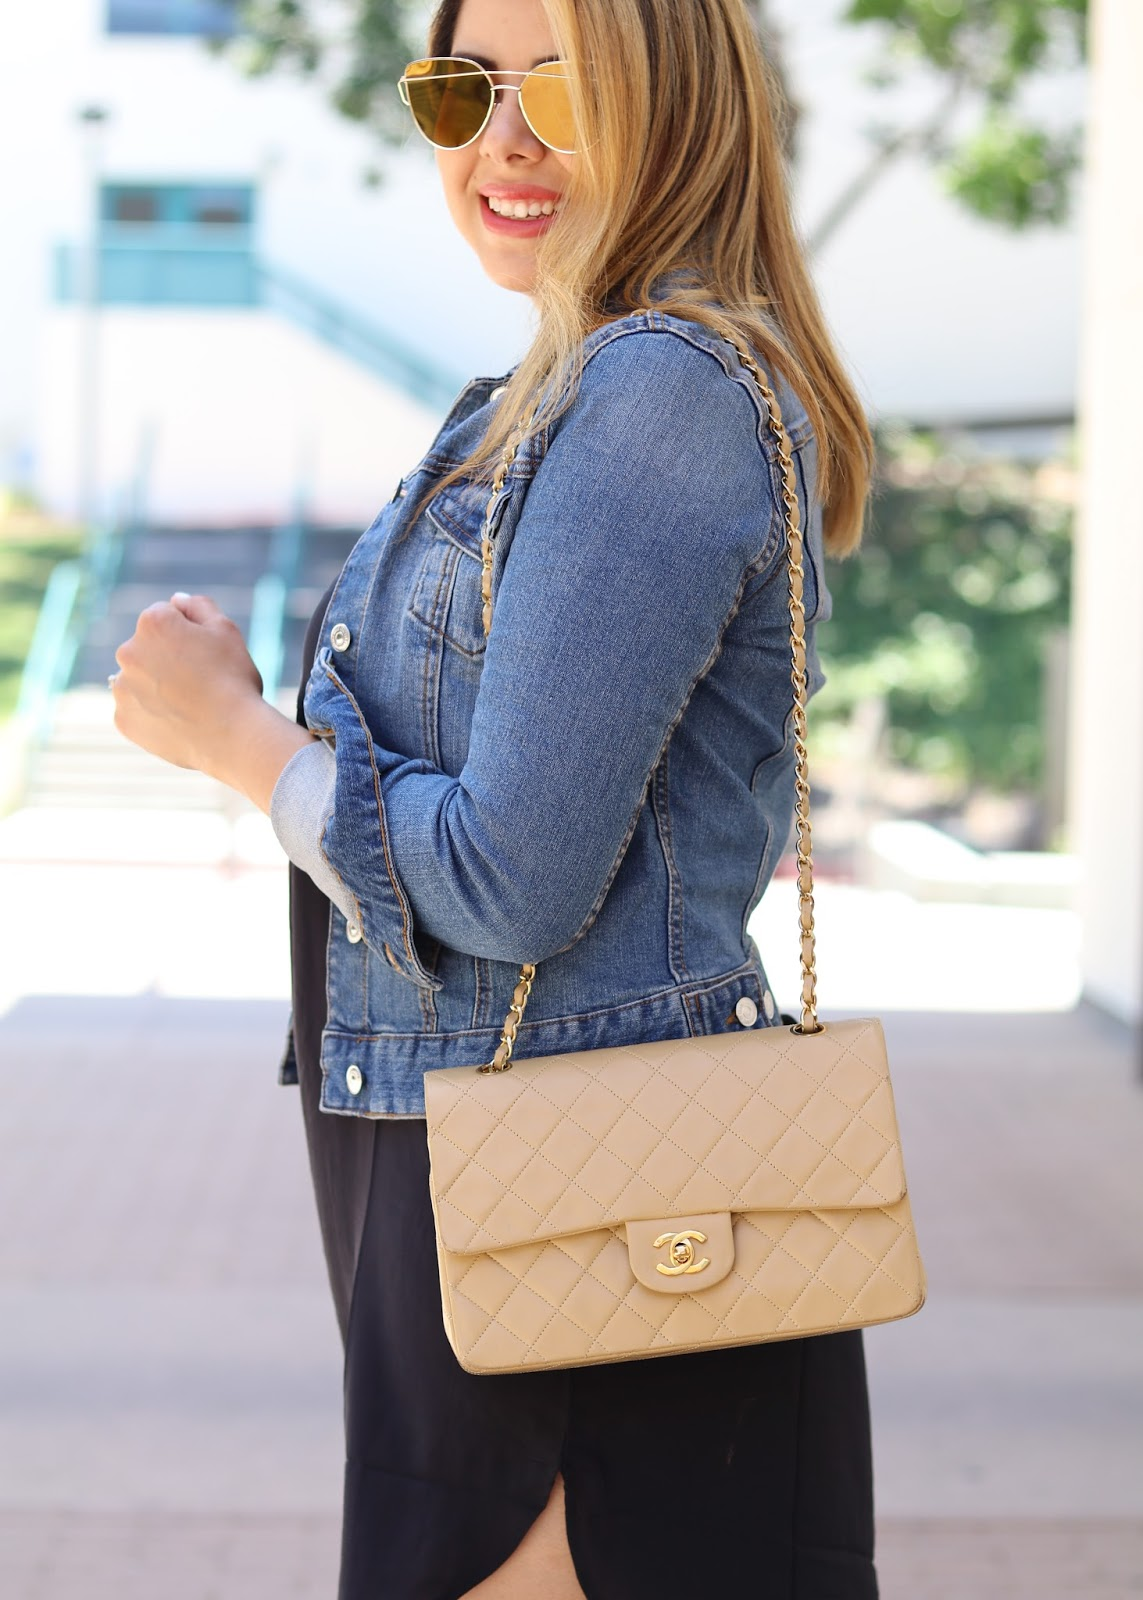 windsor store gold sunglasses, latina fashion blogger, fashion blogger in san diego, how to wear a jean jacket